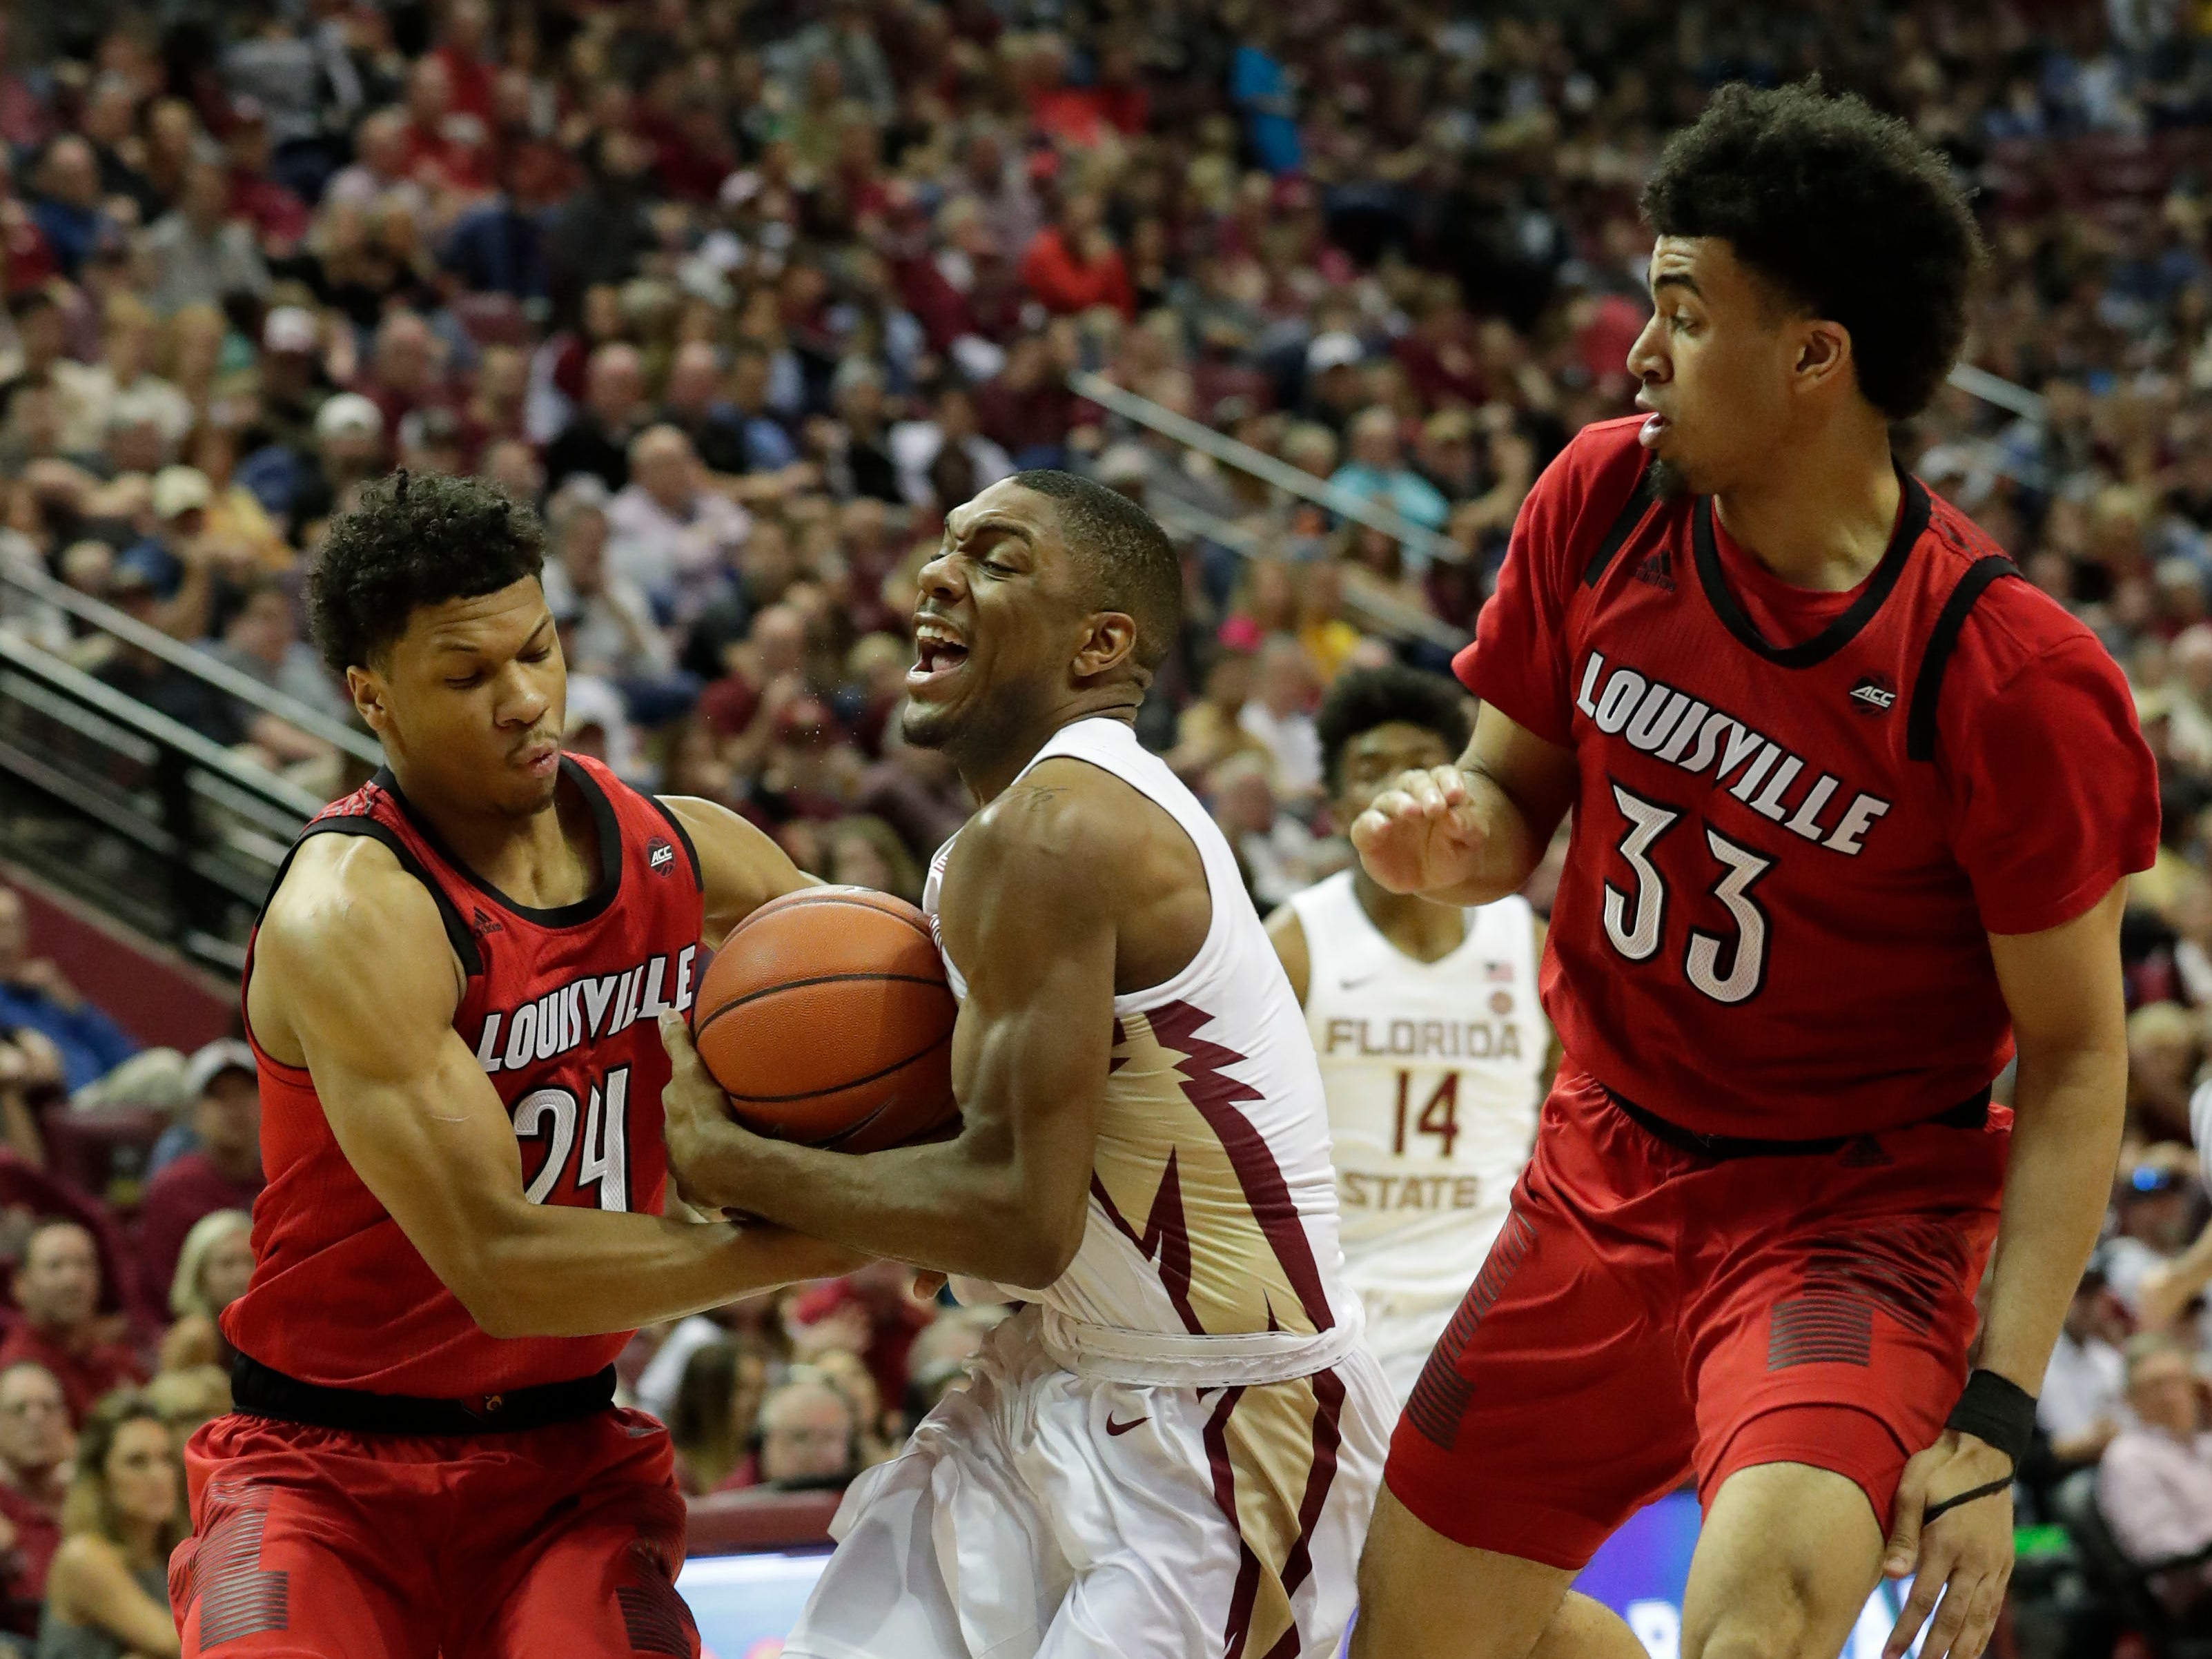 Florida State Seminoles guard Trent Forrest (3) drives the ball to the hoop while Louisville Cardinals forward Dwayne Sutton (24) tries to steal the ball. The Florida State Seminoles host the Louisville Cardinals at the Tucker Civic Center, Saturday Feb. 9, 2019.